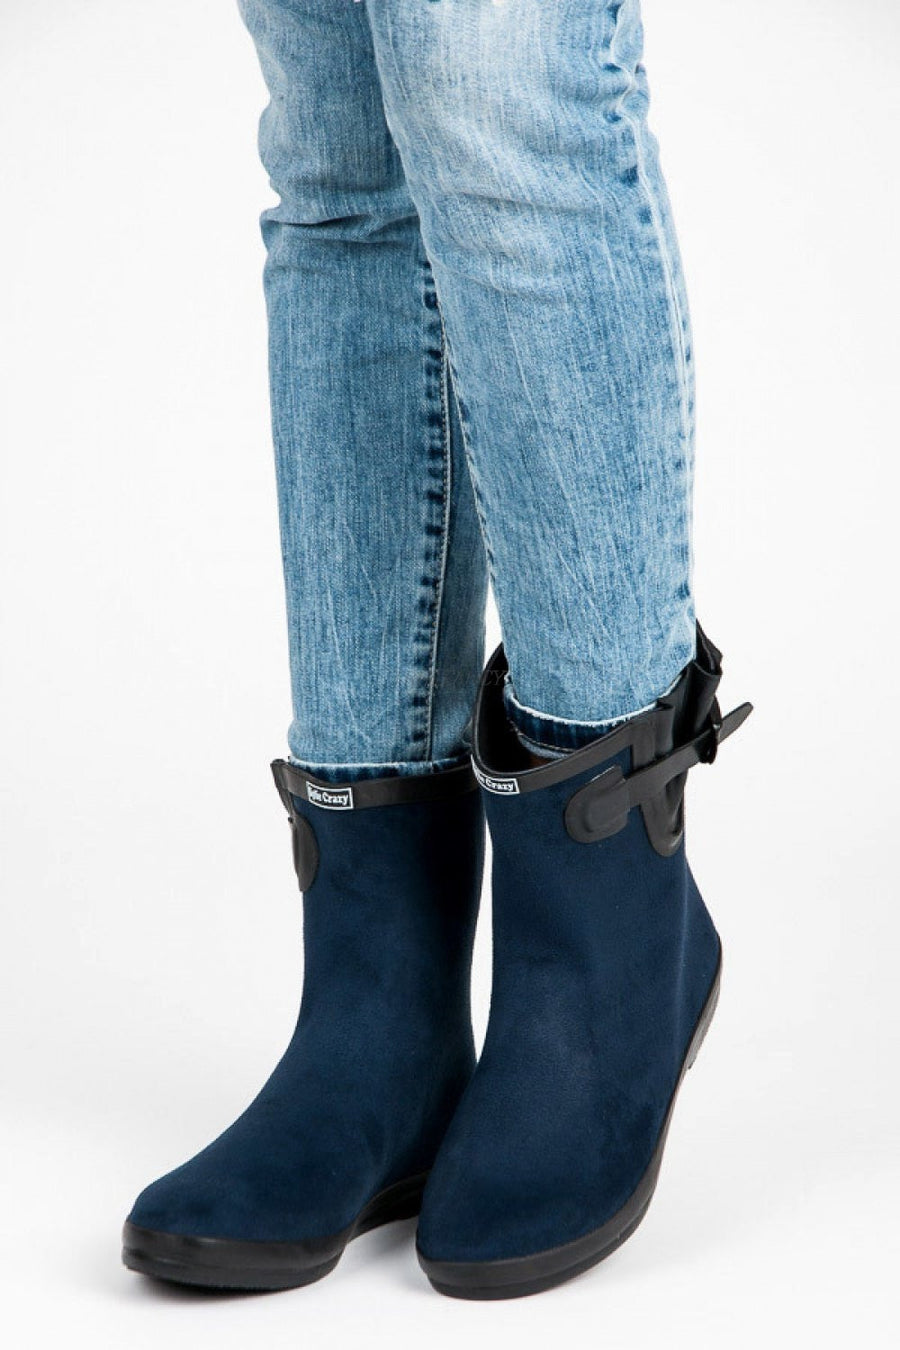 Wellingtons 78585 Zoki-Over the Knee High Boots, Thigh High Boots-Zoki-blue-36-Très Fancy